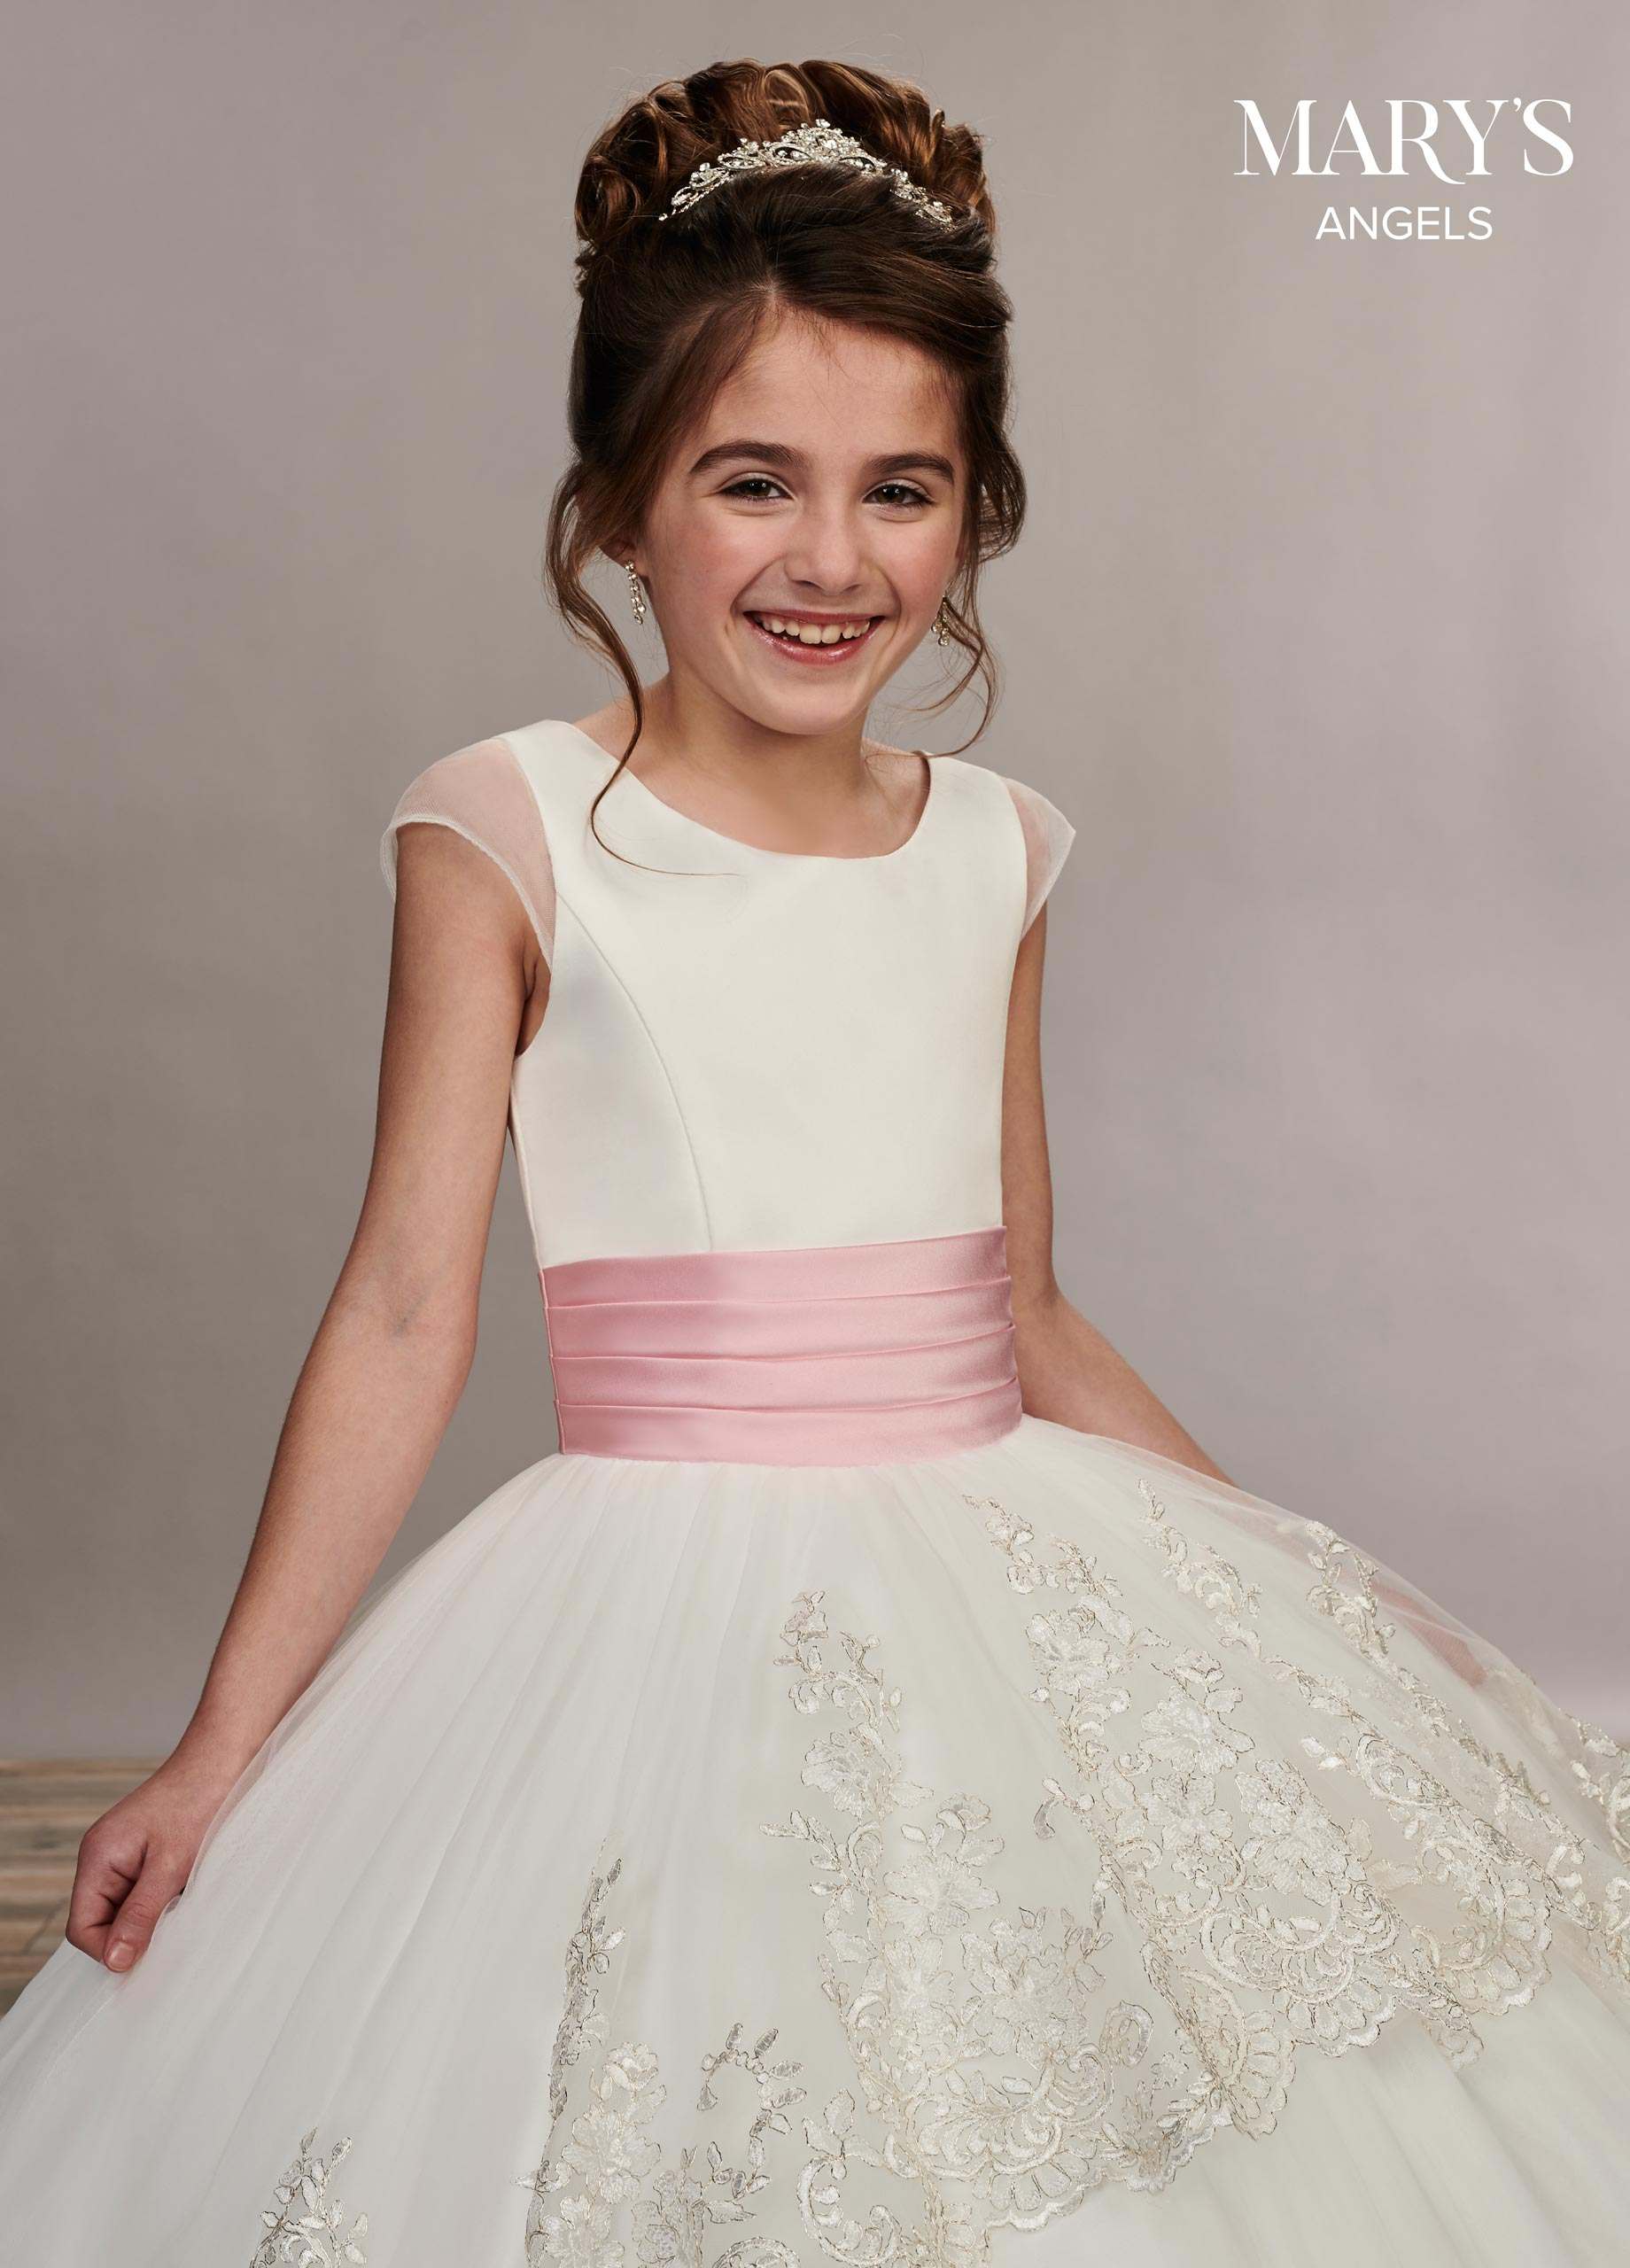 Angel Flower Girl Dresses | Mary's Angels | Style - MB9047